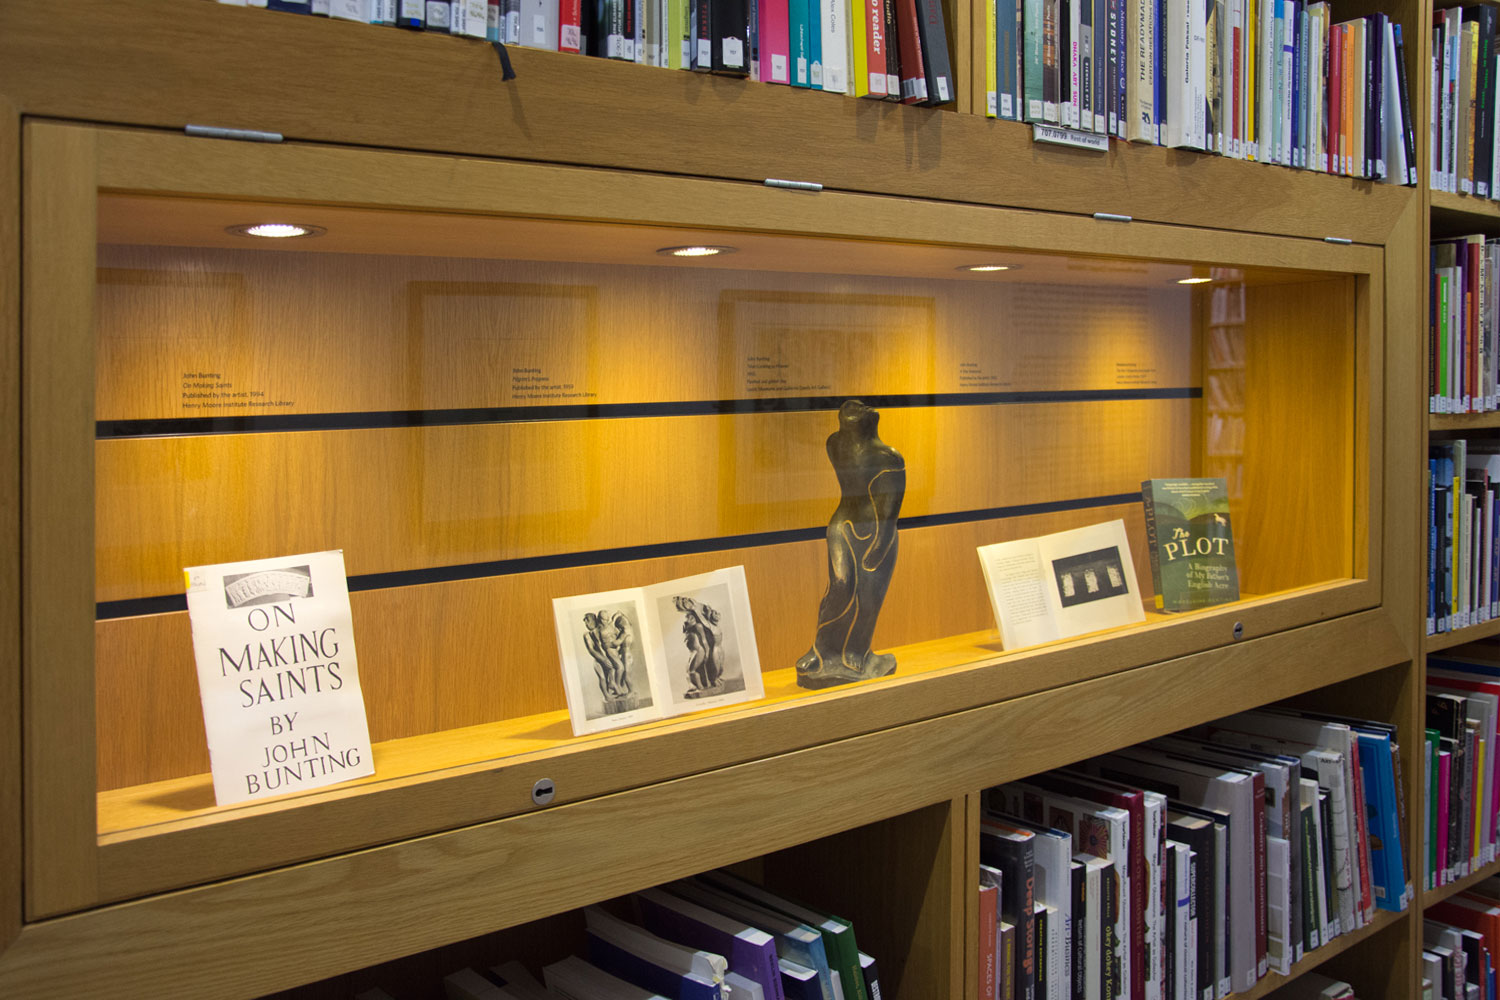 'John Bunting: Sculptural Influences and the Memorial Chapel, Oldstead' library display